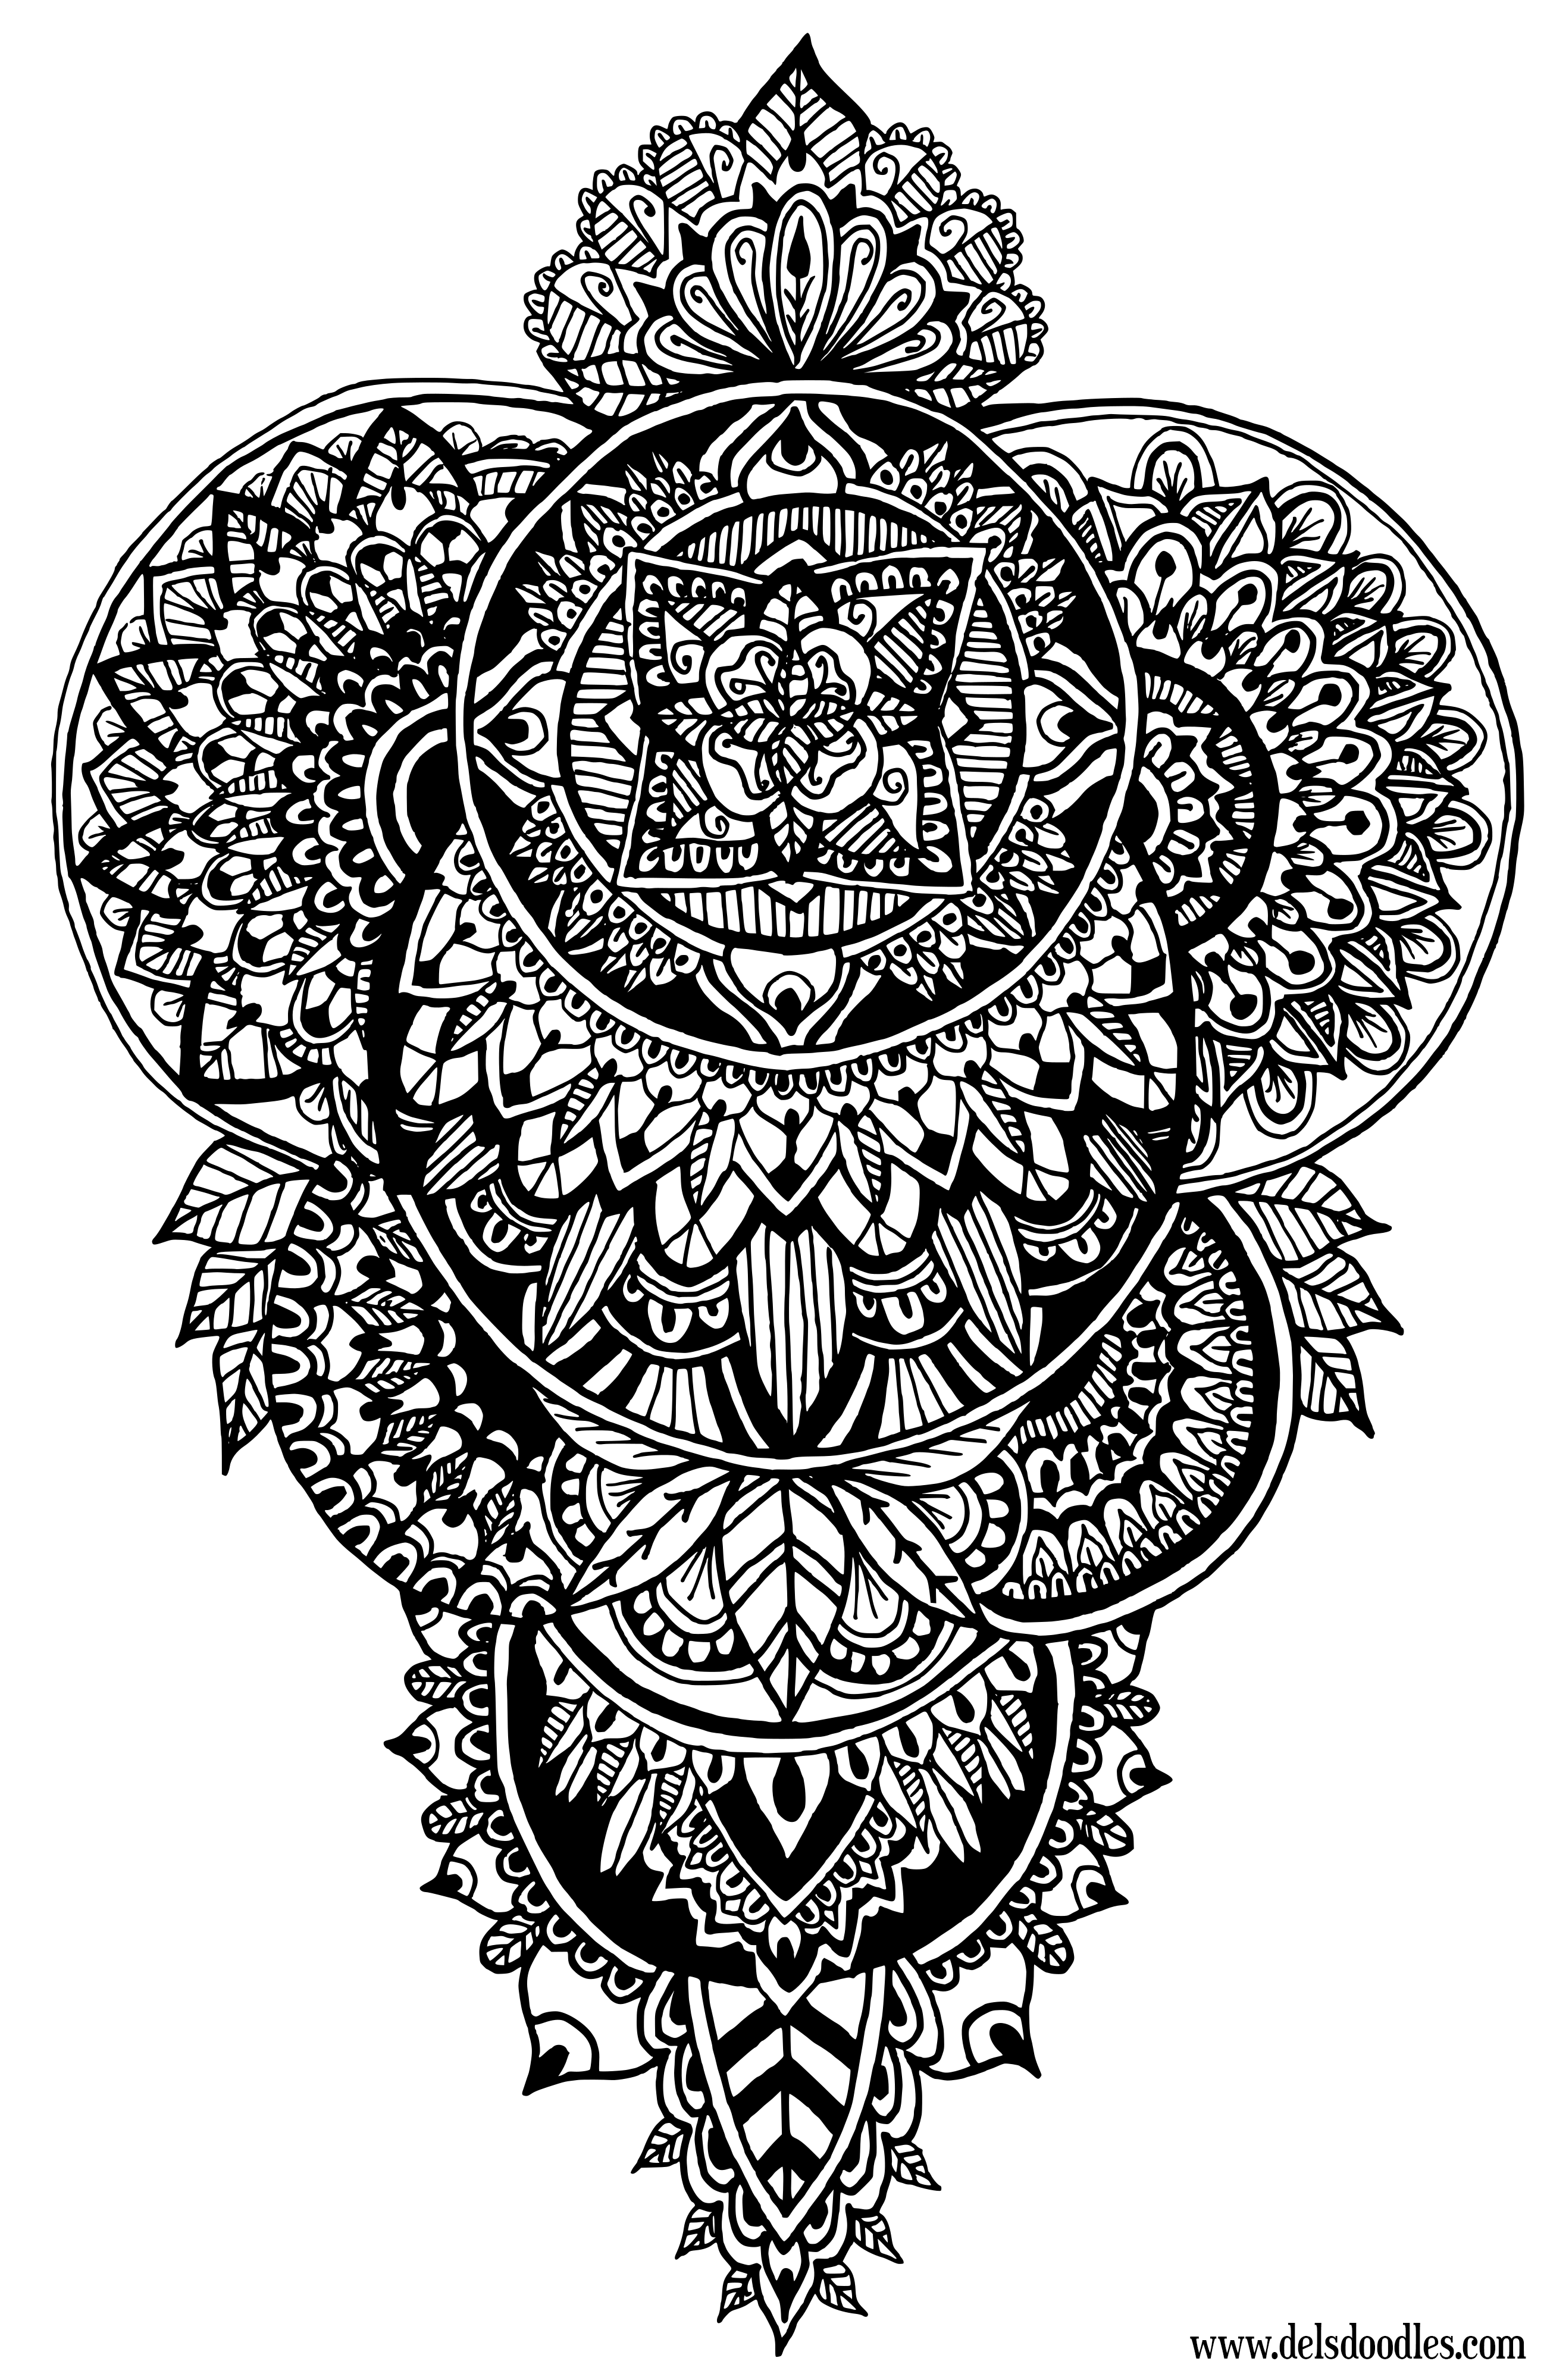 Coloring pages yin yang - Disks Doodle Colouring Page By Welshpixie